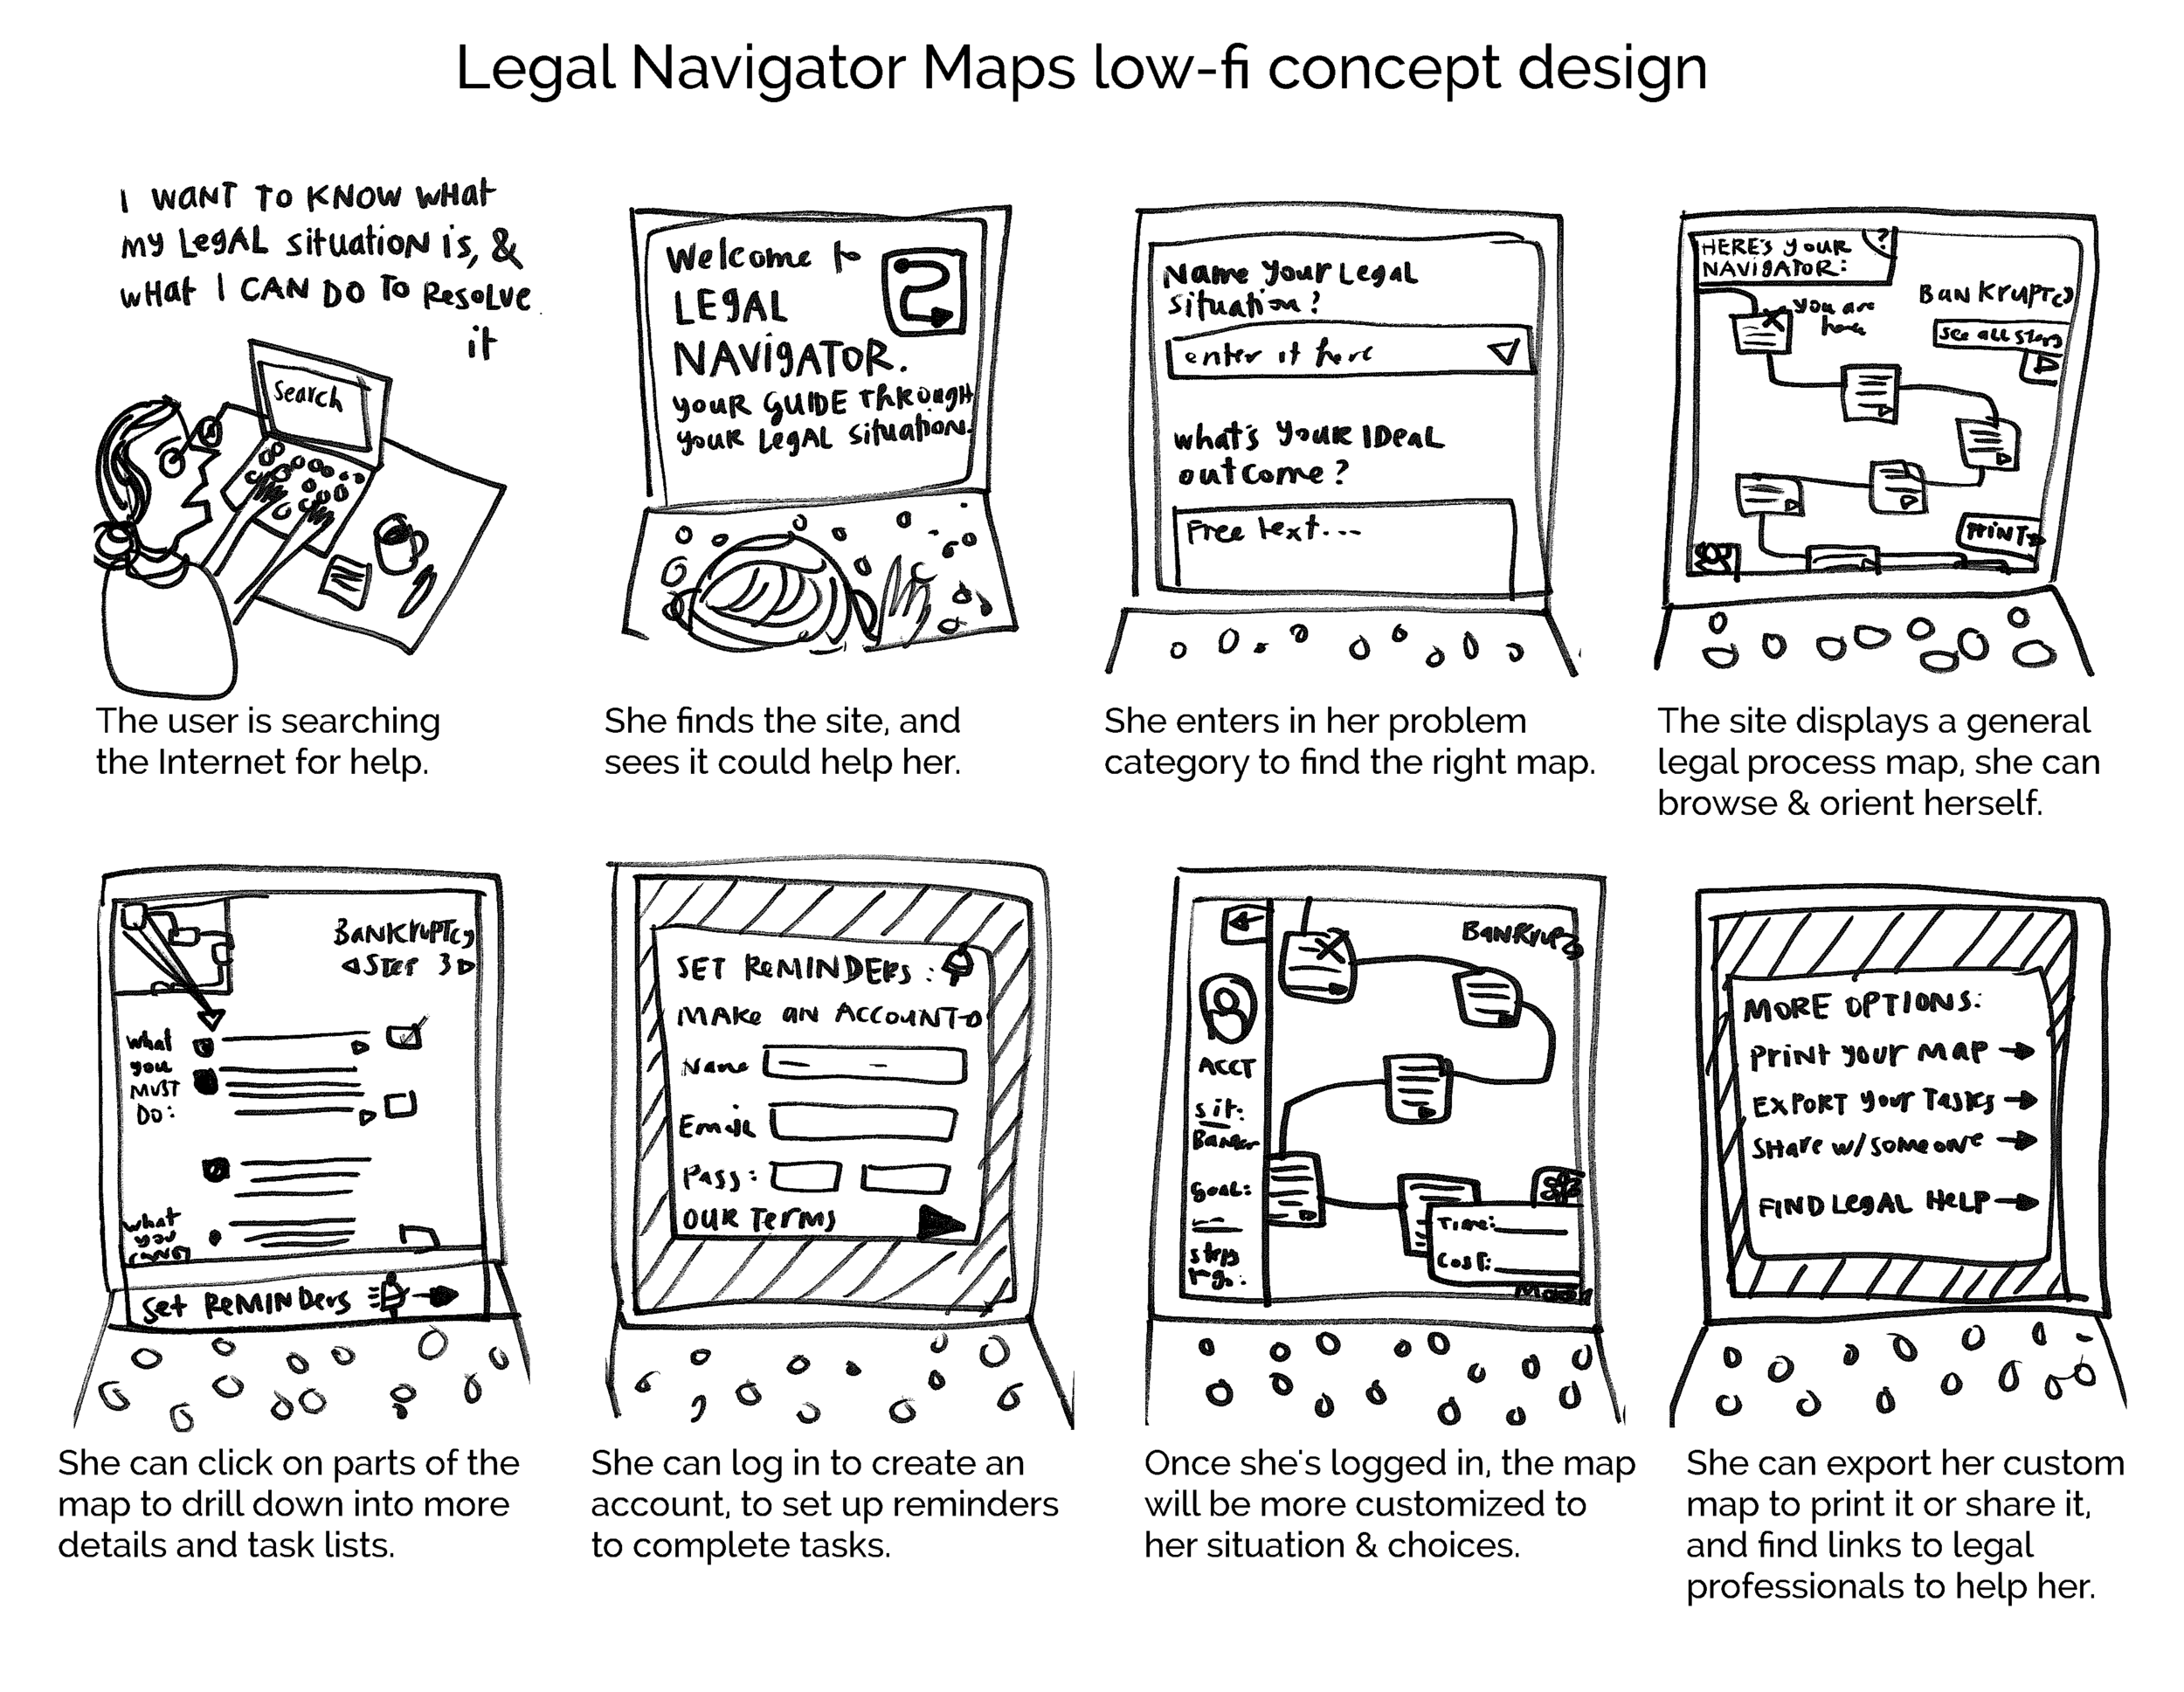 Legal Navigator Maps - Concept Design of a user experience flow